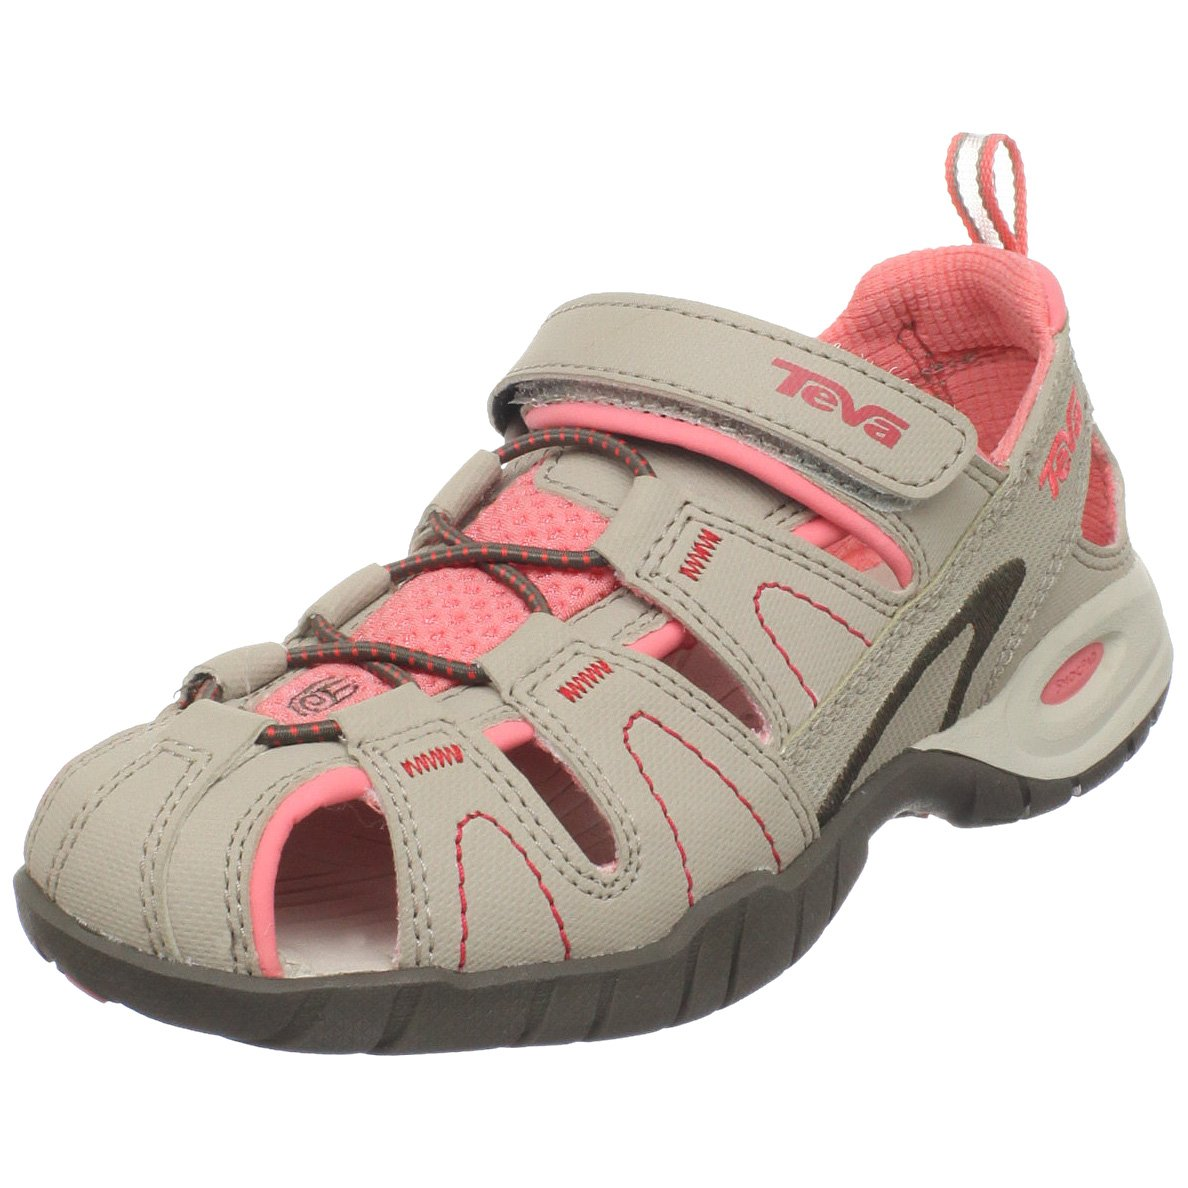 09b444bdf5dd Teva Dozer 3 Closed Toe Sandal (Toddler Little Kid Big Kid)